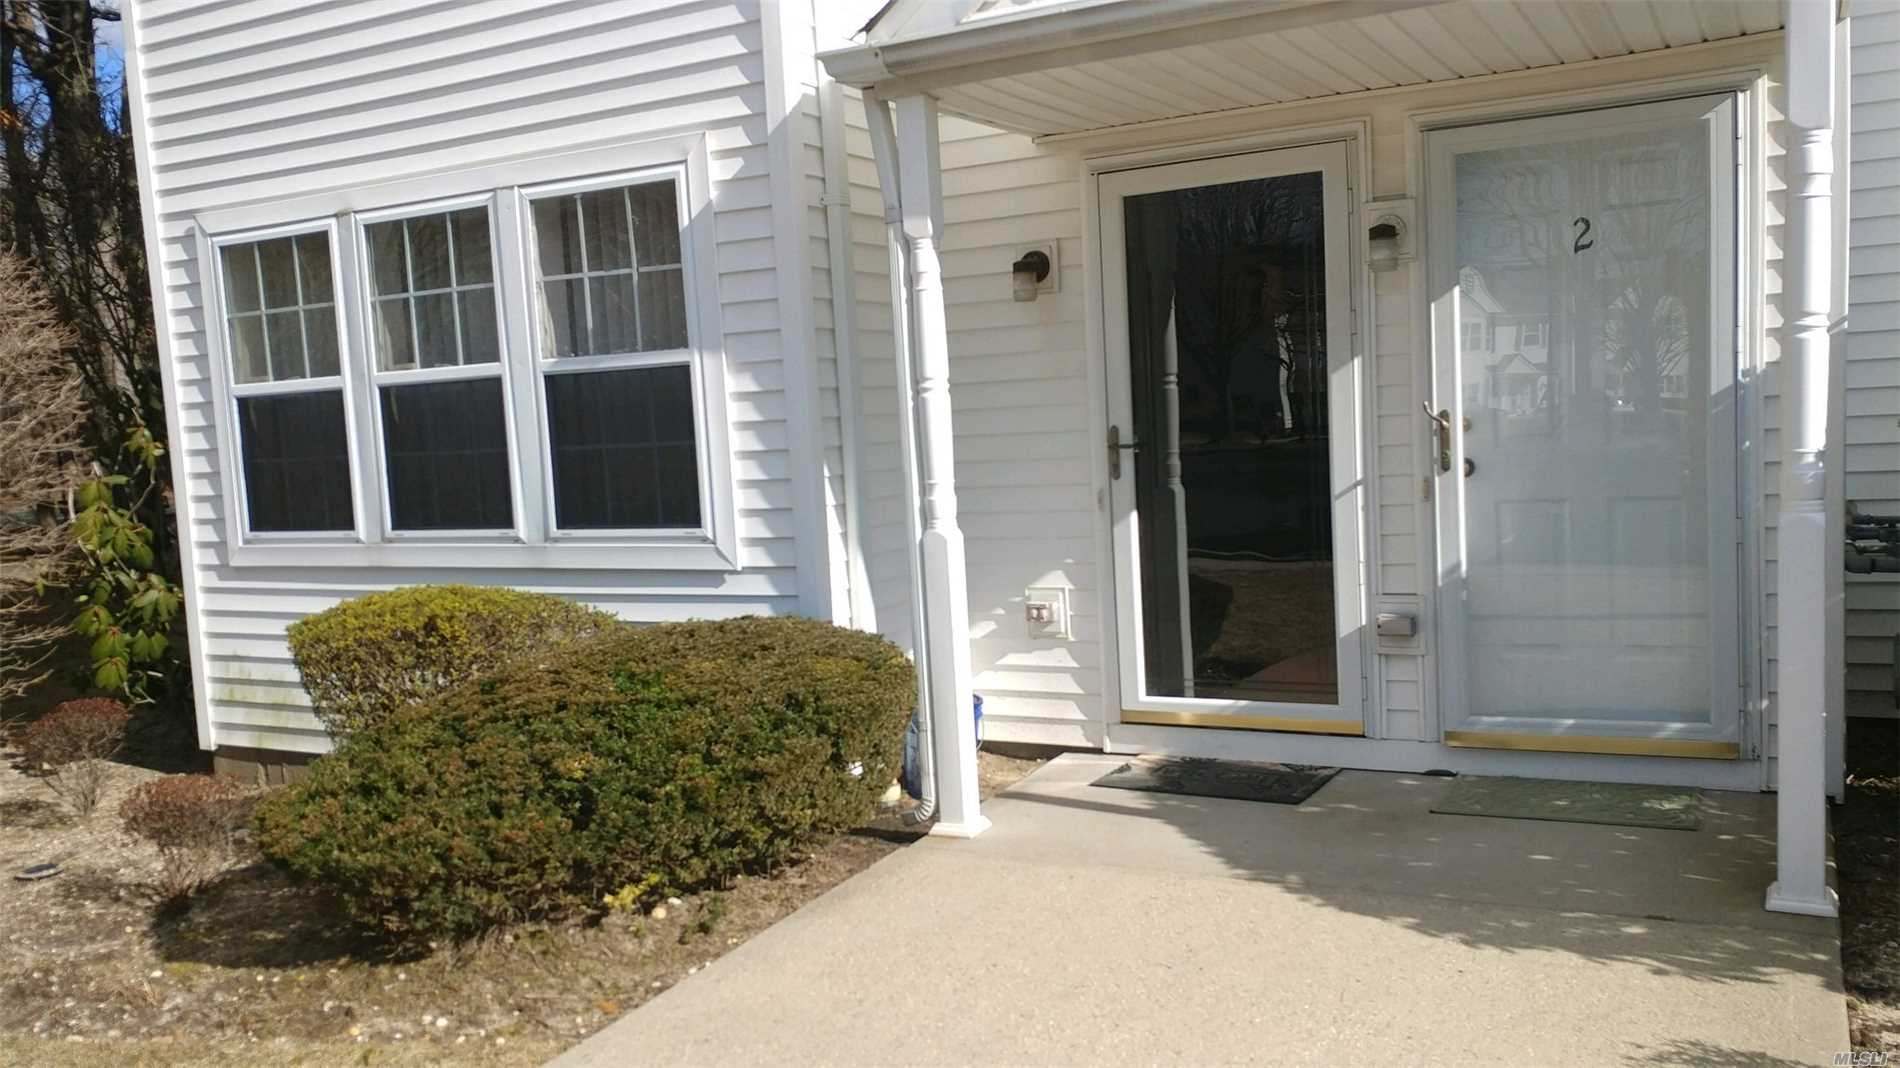 Great Ground Level 2 Bedroom Corner Unit Condo. New Floors And Carpets. Newer Washer And Dryer. Private Yard. Adjacent To Reserved Parking.(Rental Permit 3 People Max).